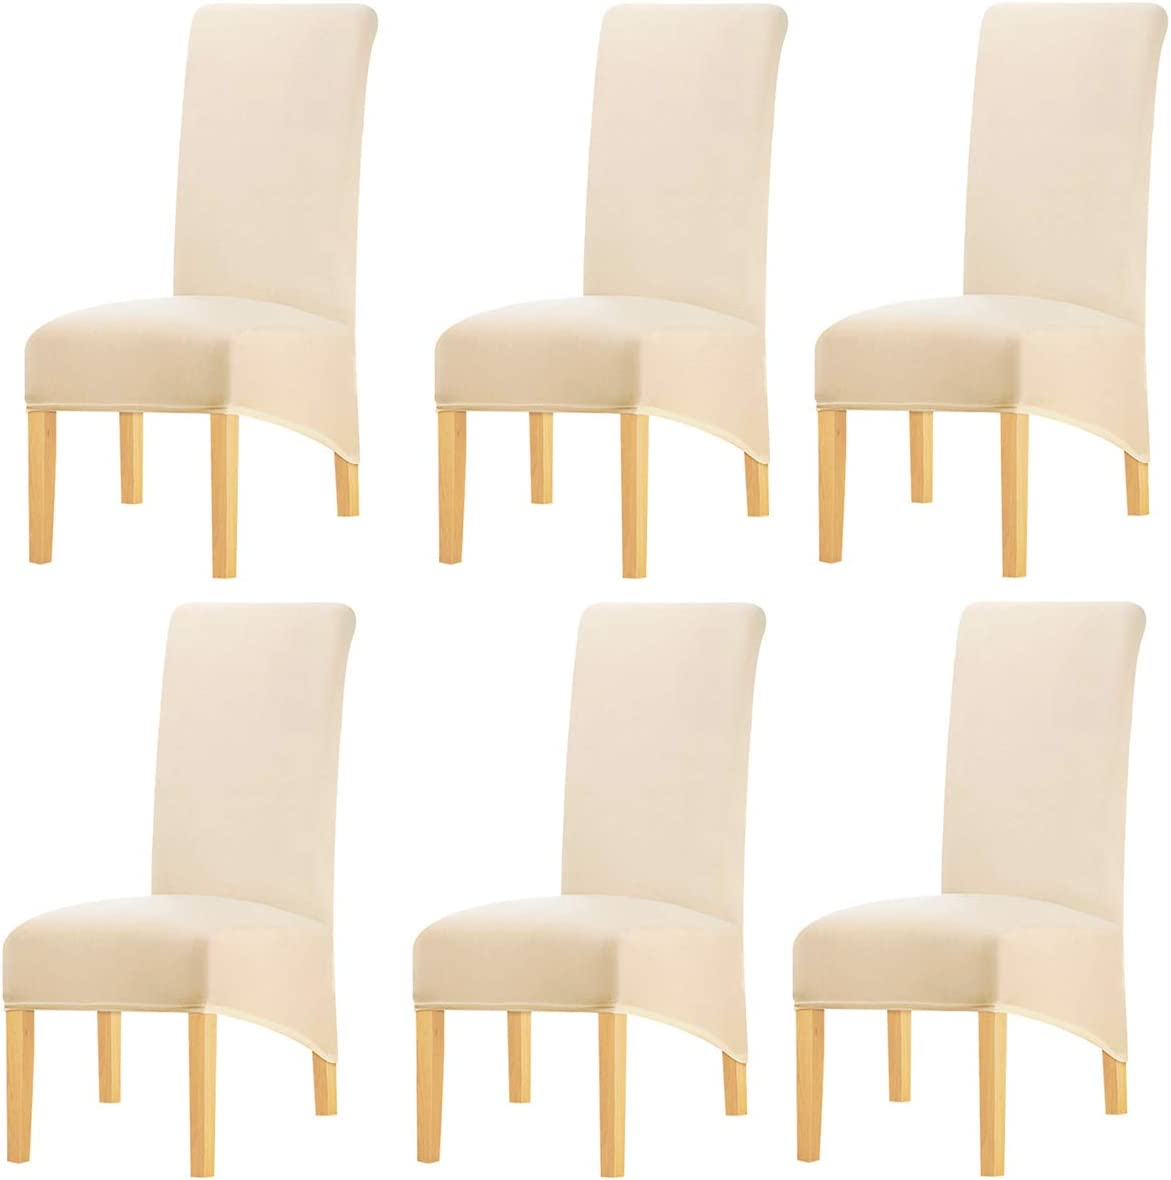 KELUINA Large Spring new work one after another Dining Chair XL Covers Room special price Slipcover